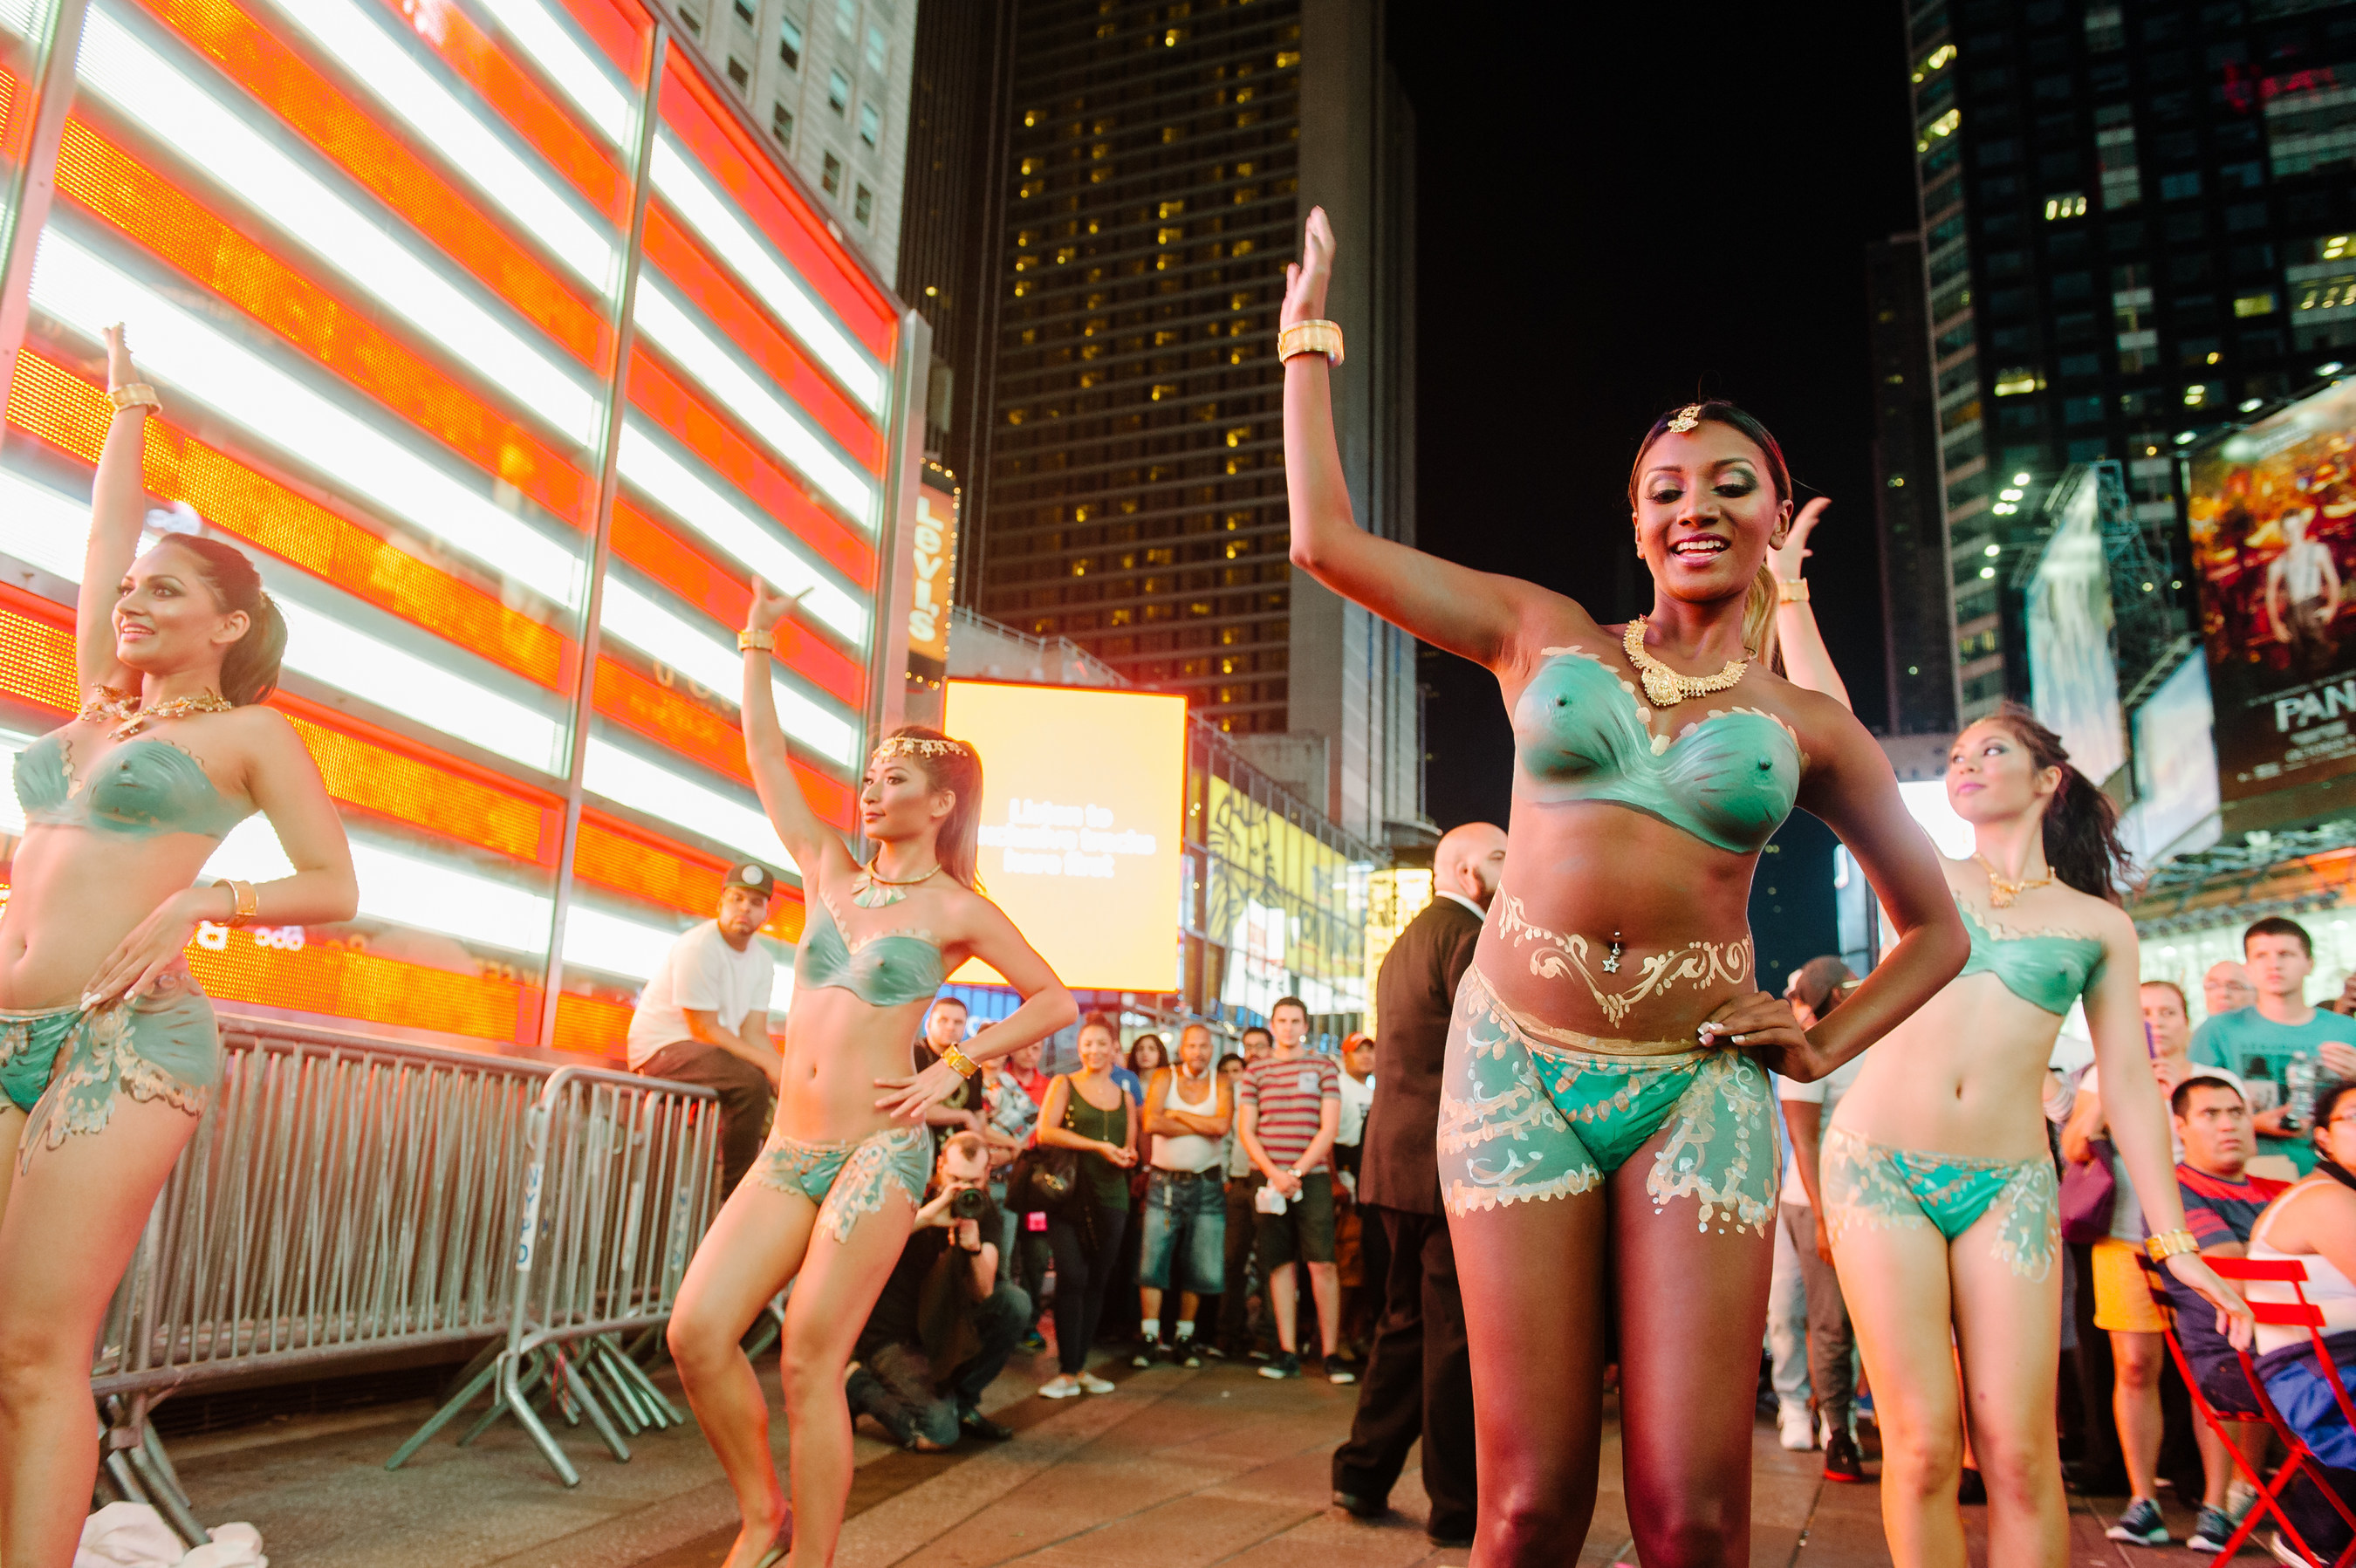 Nude Rebtel Desi Dancers Take Over Times Square Giving Desnudas a Run for Their Money to Announce Unlimited Calling to India